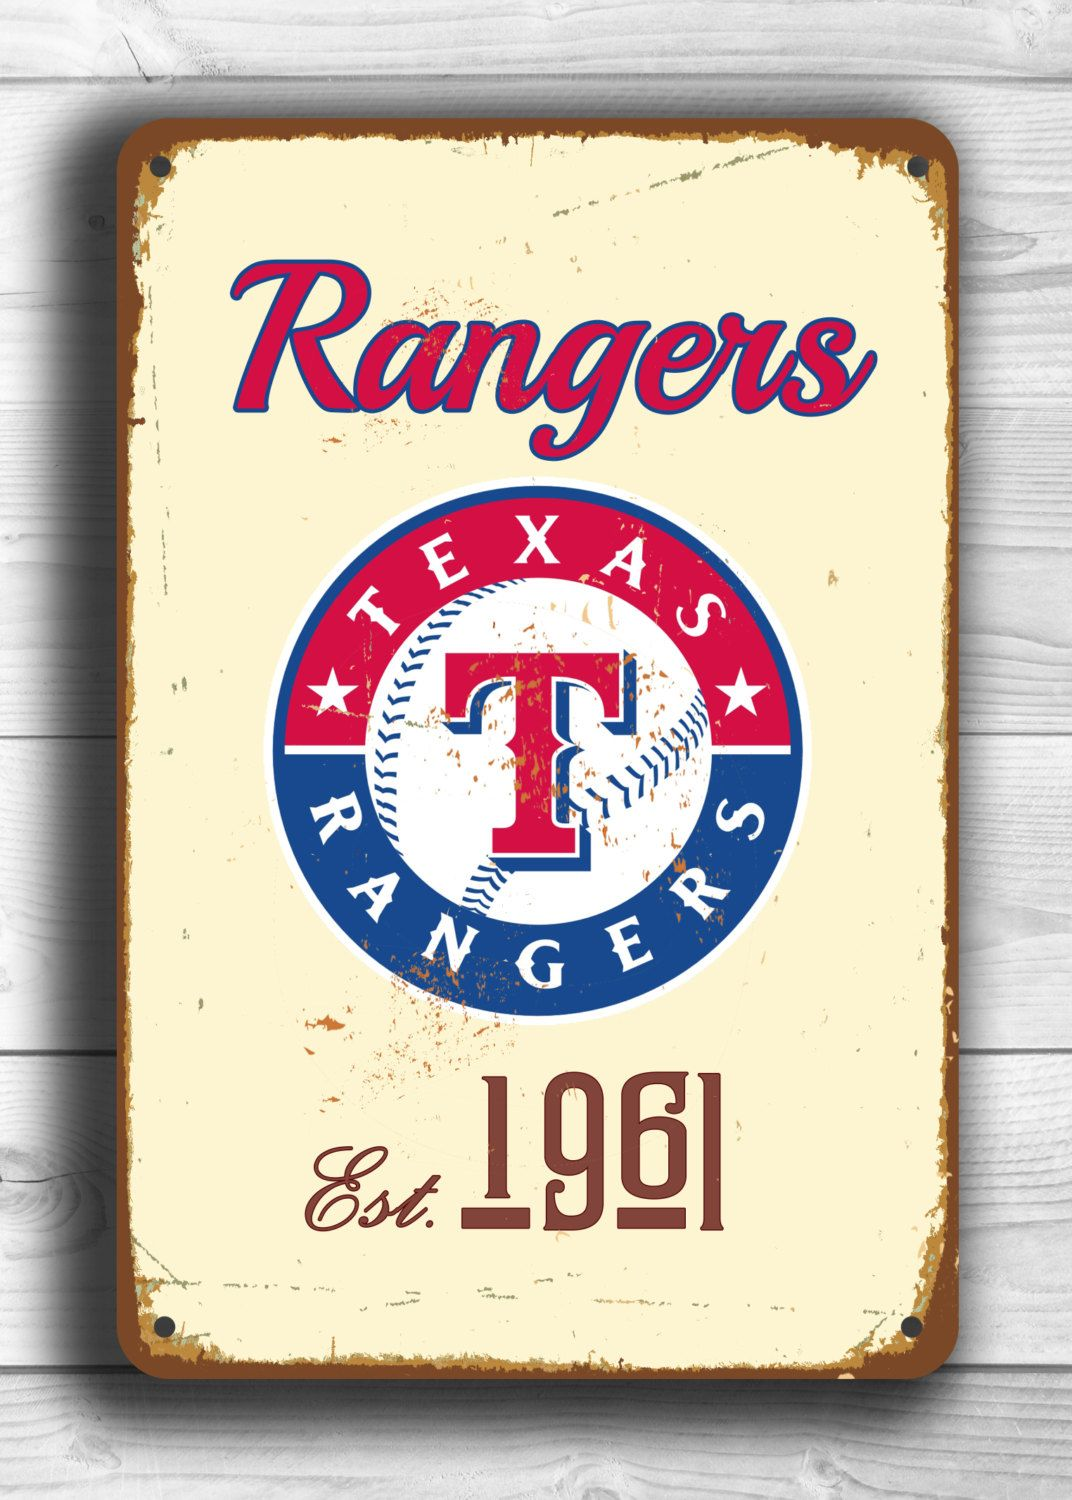 Vintage Style Texas Rangers Sign Texas Rangers Est 1961 Composite Aluminum Texas Rangers In Team Color Texas Rangers Texas Rangers Baseball Mlb Texas Rangers